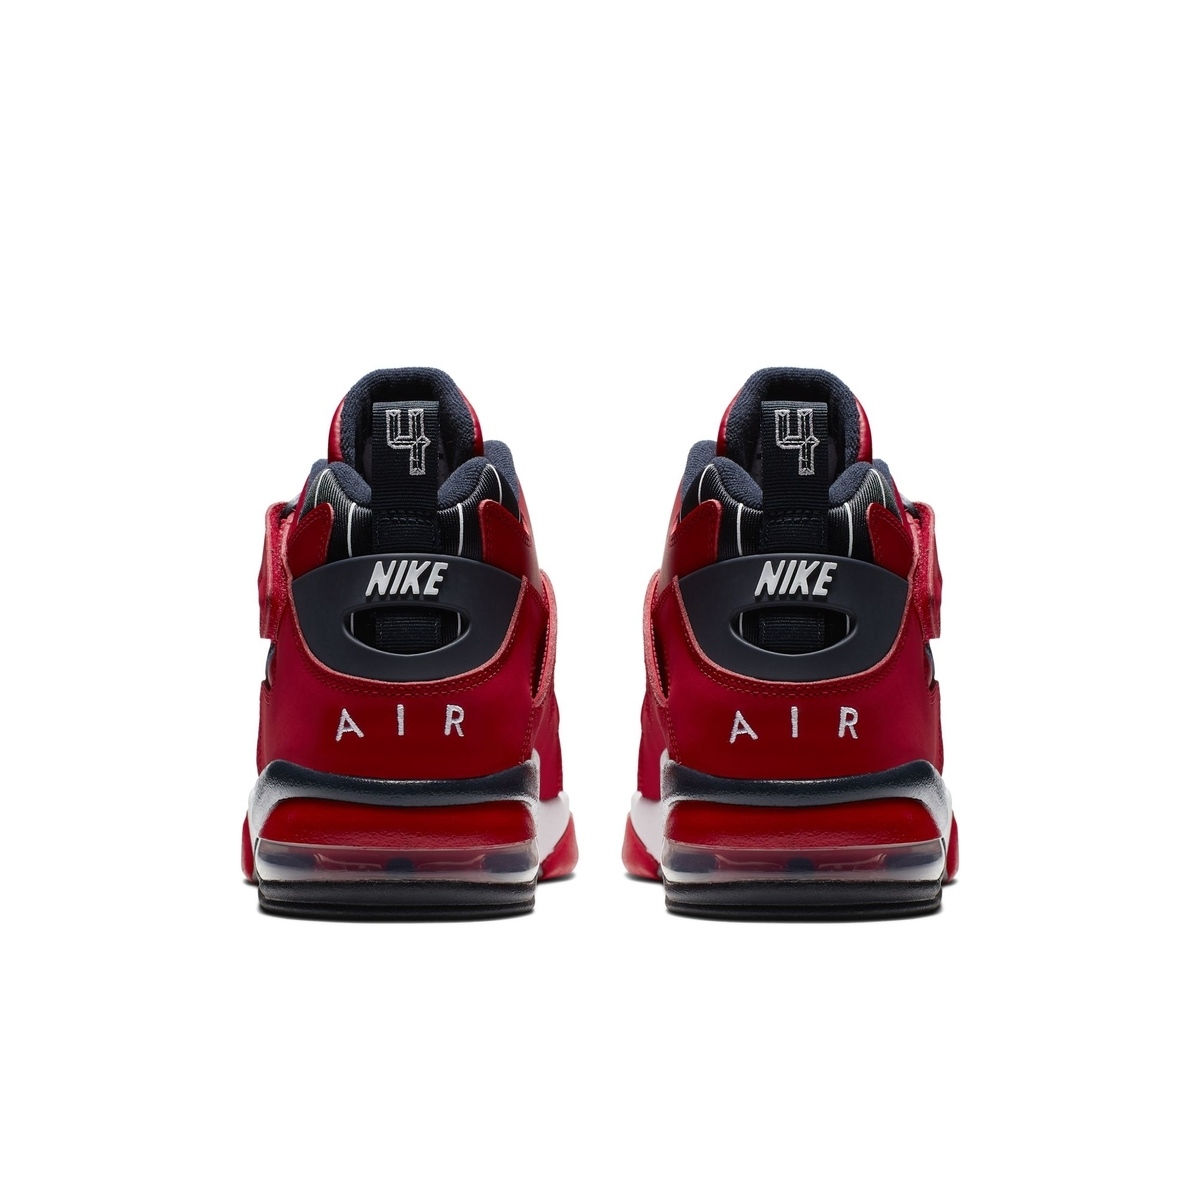 A 'Gym RedBlackWhite' Nike Air Force Max CB Has Been Spotted